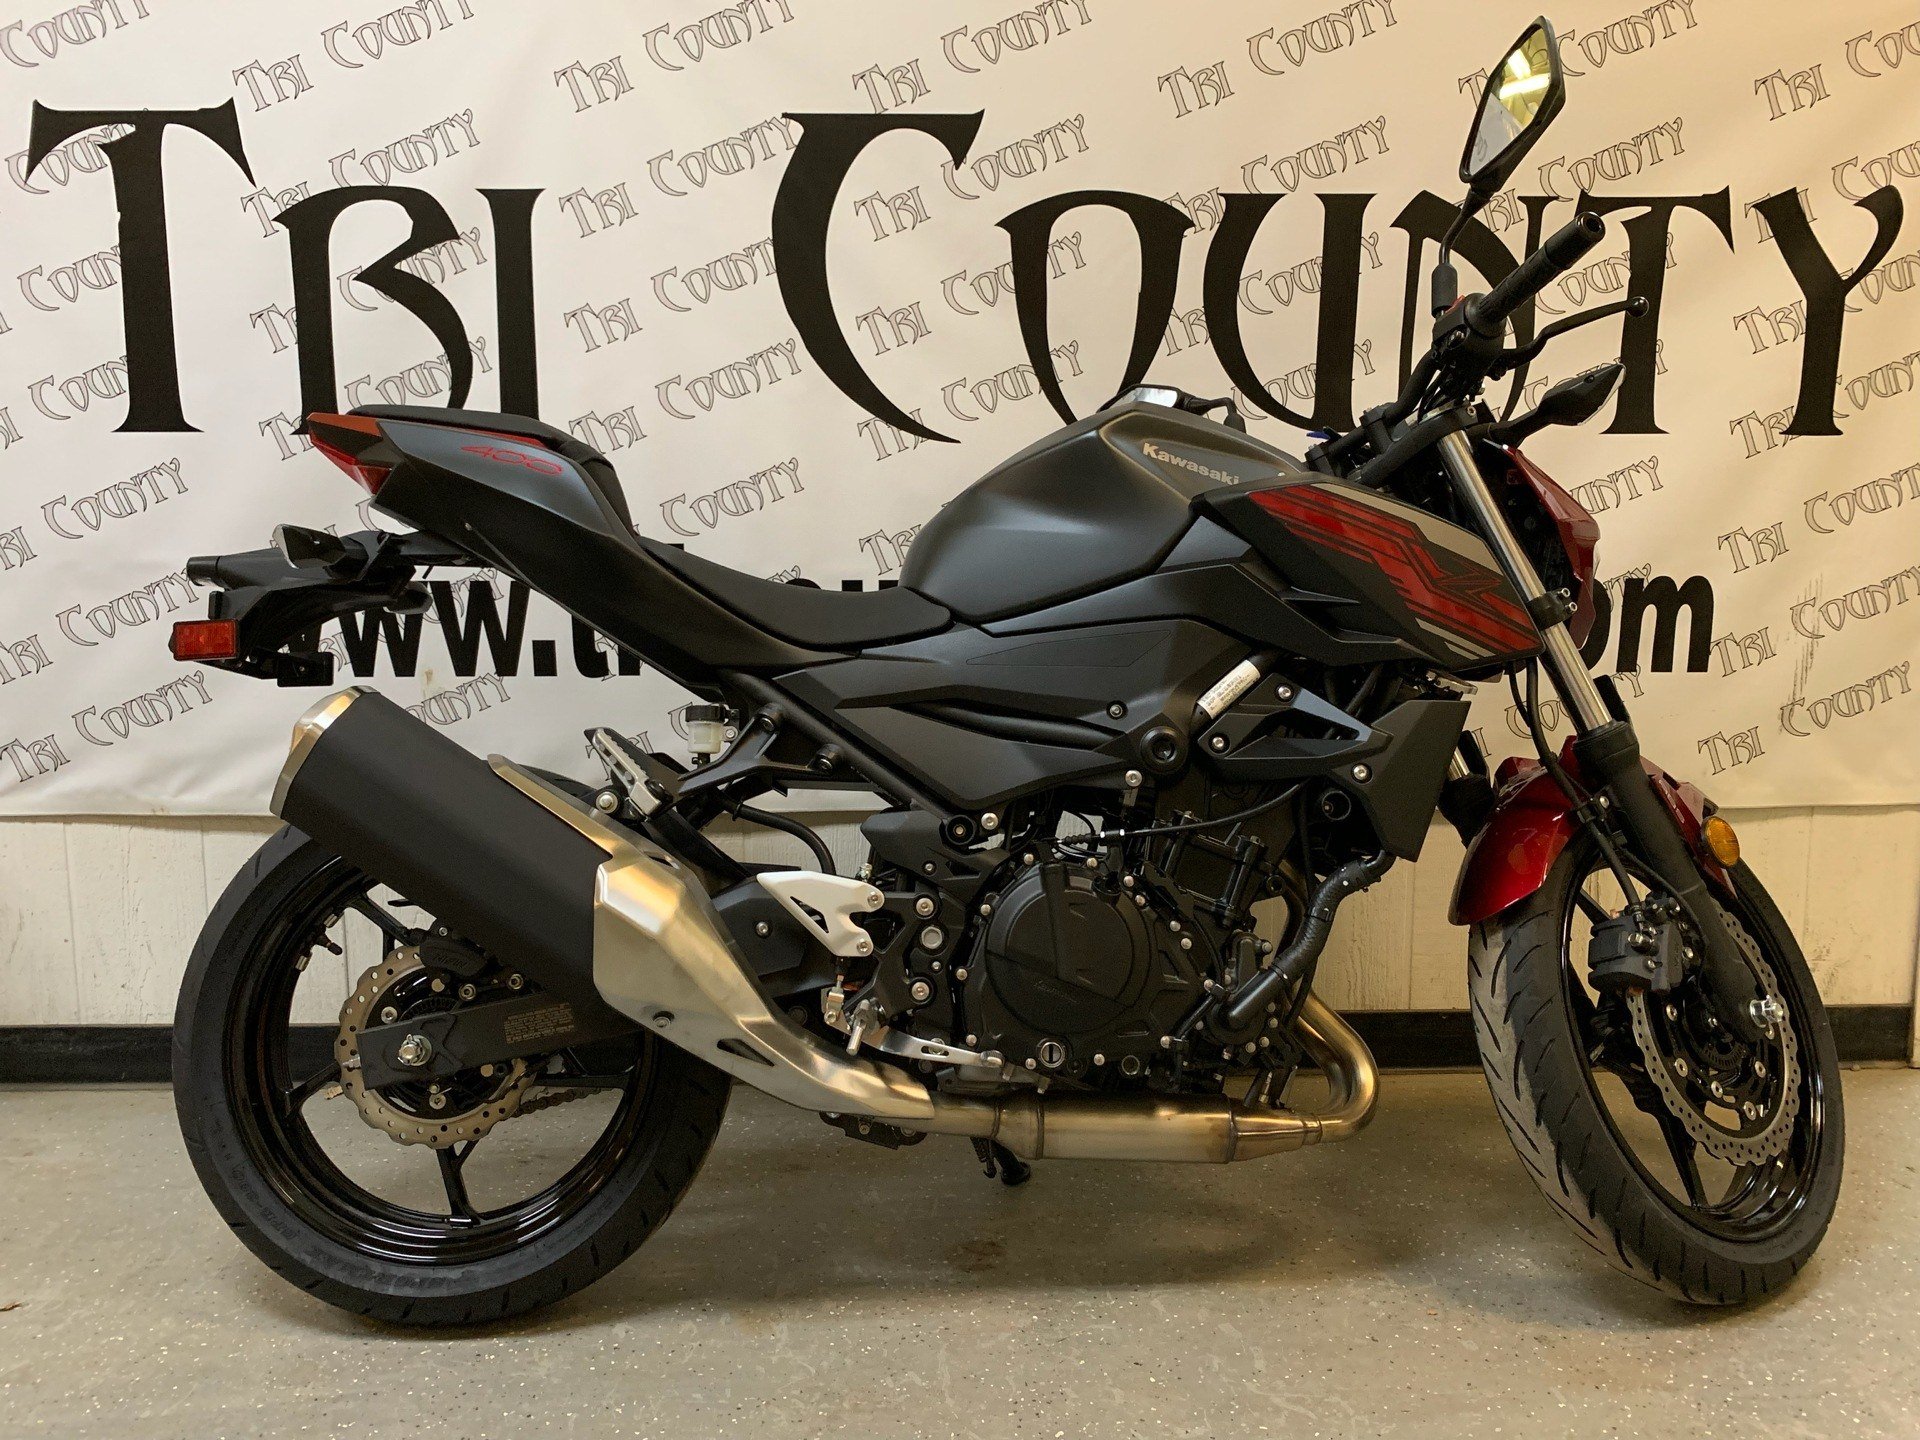 2019 Kawasaki Z400 ABS First Look (11 Fast Facts)